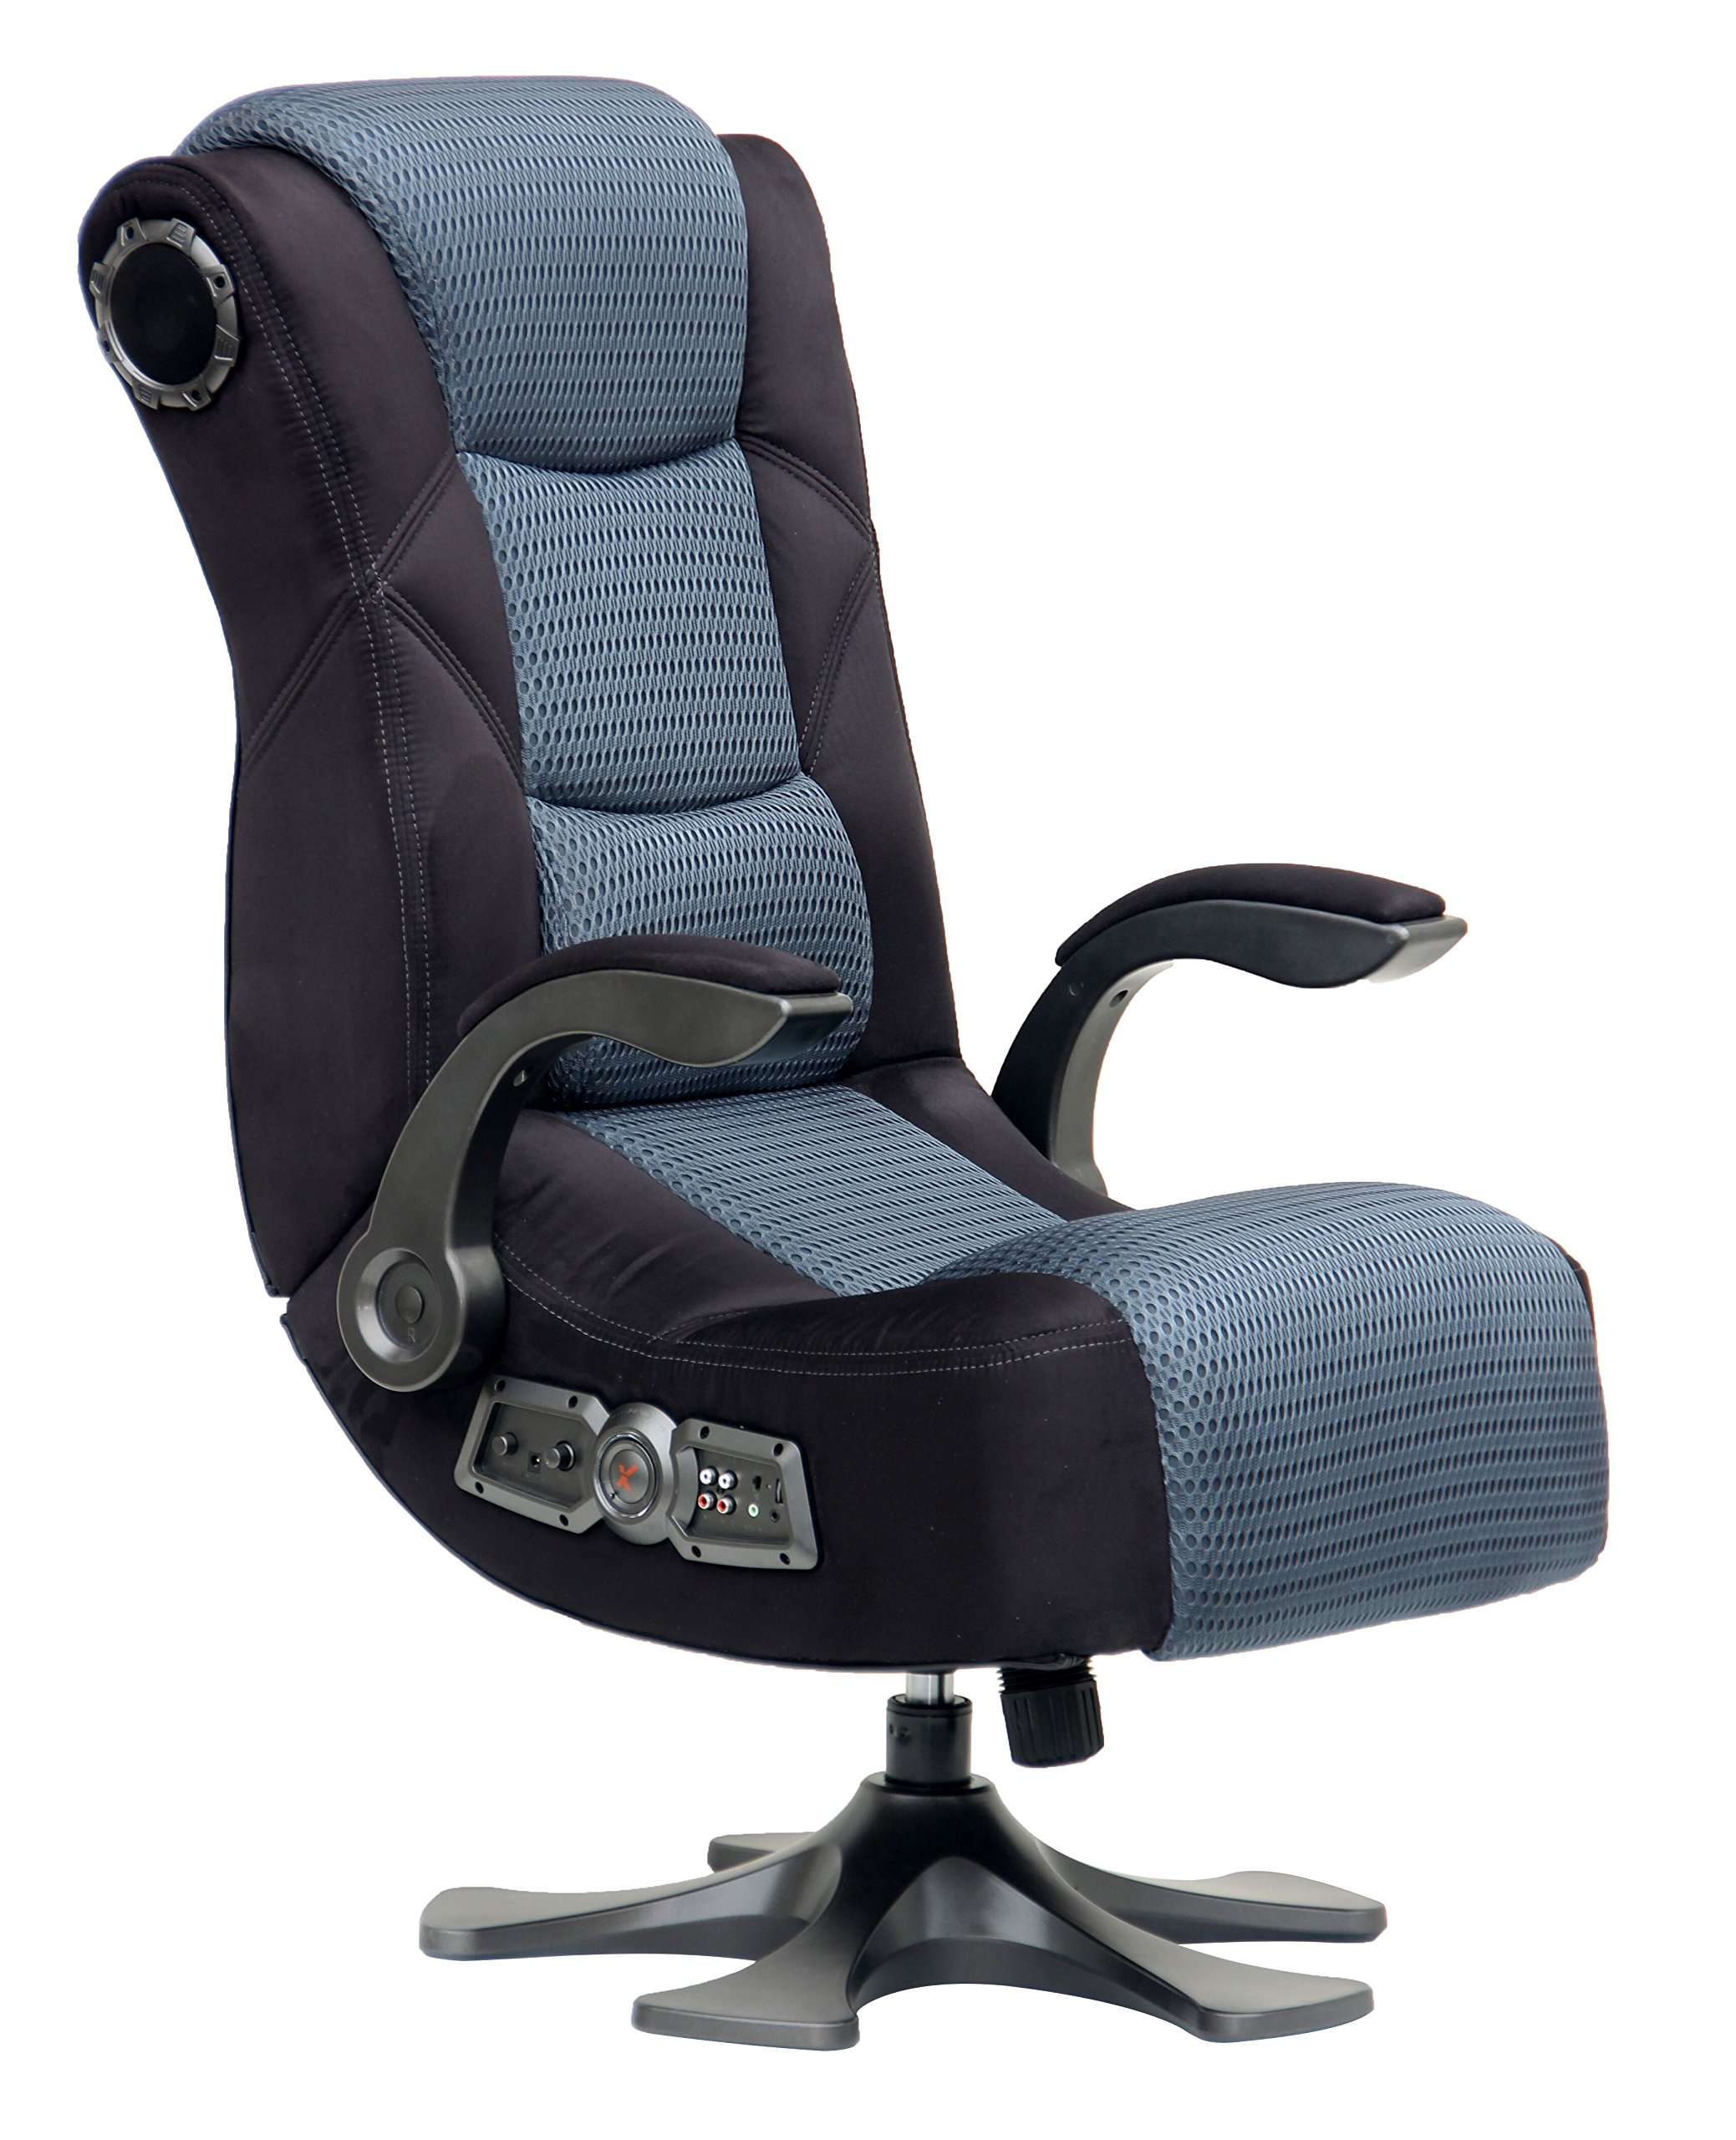 X Rocker Deluxe Mesh 2.1 Sound Wireless Video Gaming Chair Pedestal Video Gaming Chair with Breathable Microfiber Mesh - Lumbar Support & Padded Armrests, 2 Speakers w/Subwoofer - Black/Gray, 5129501 by X Rocker